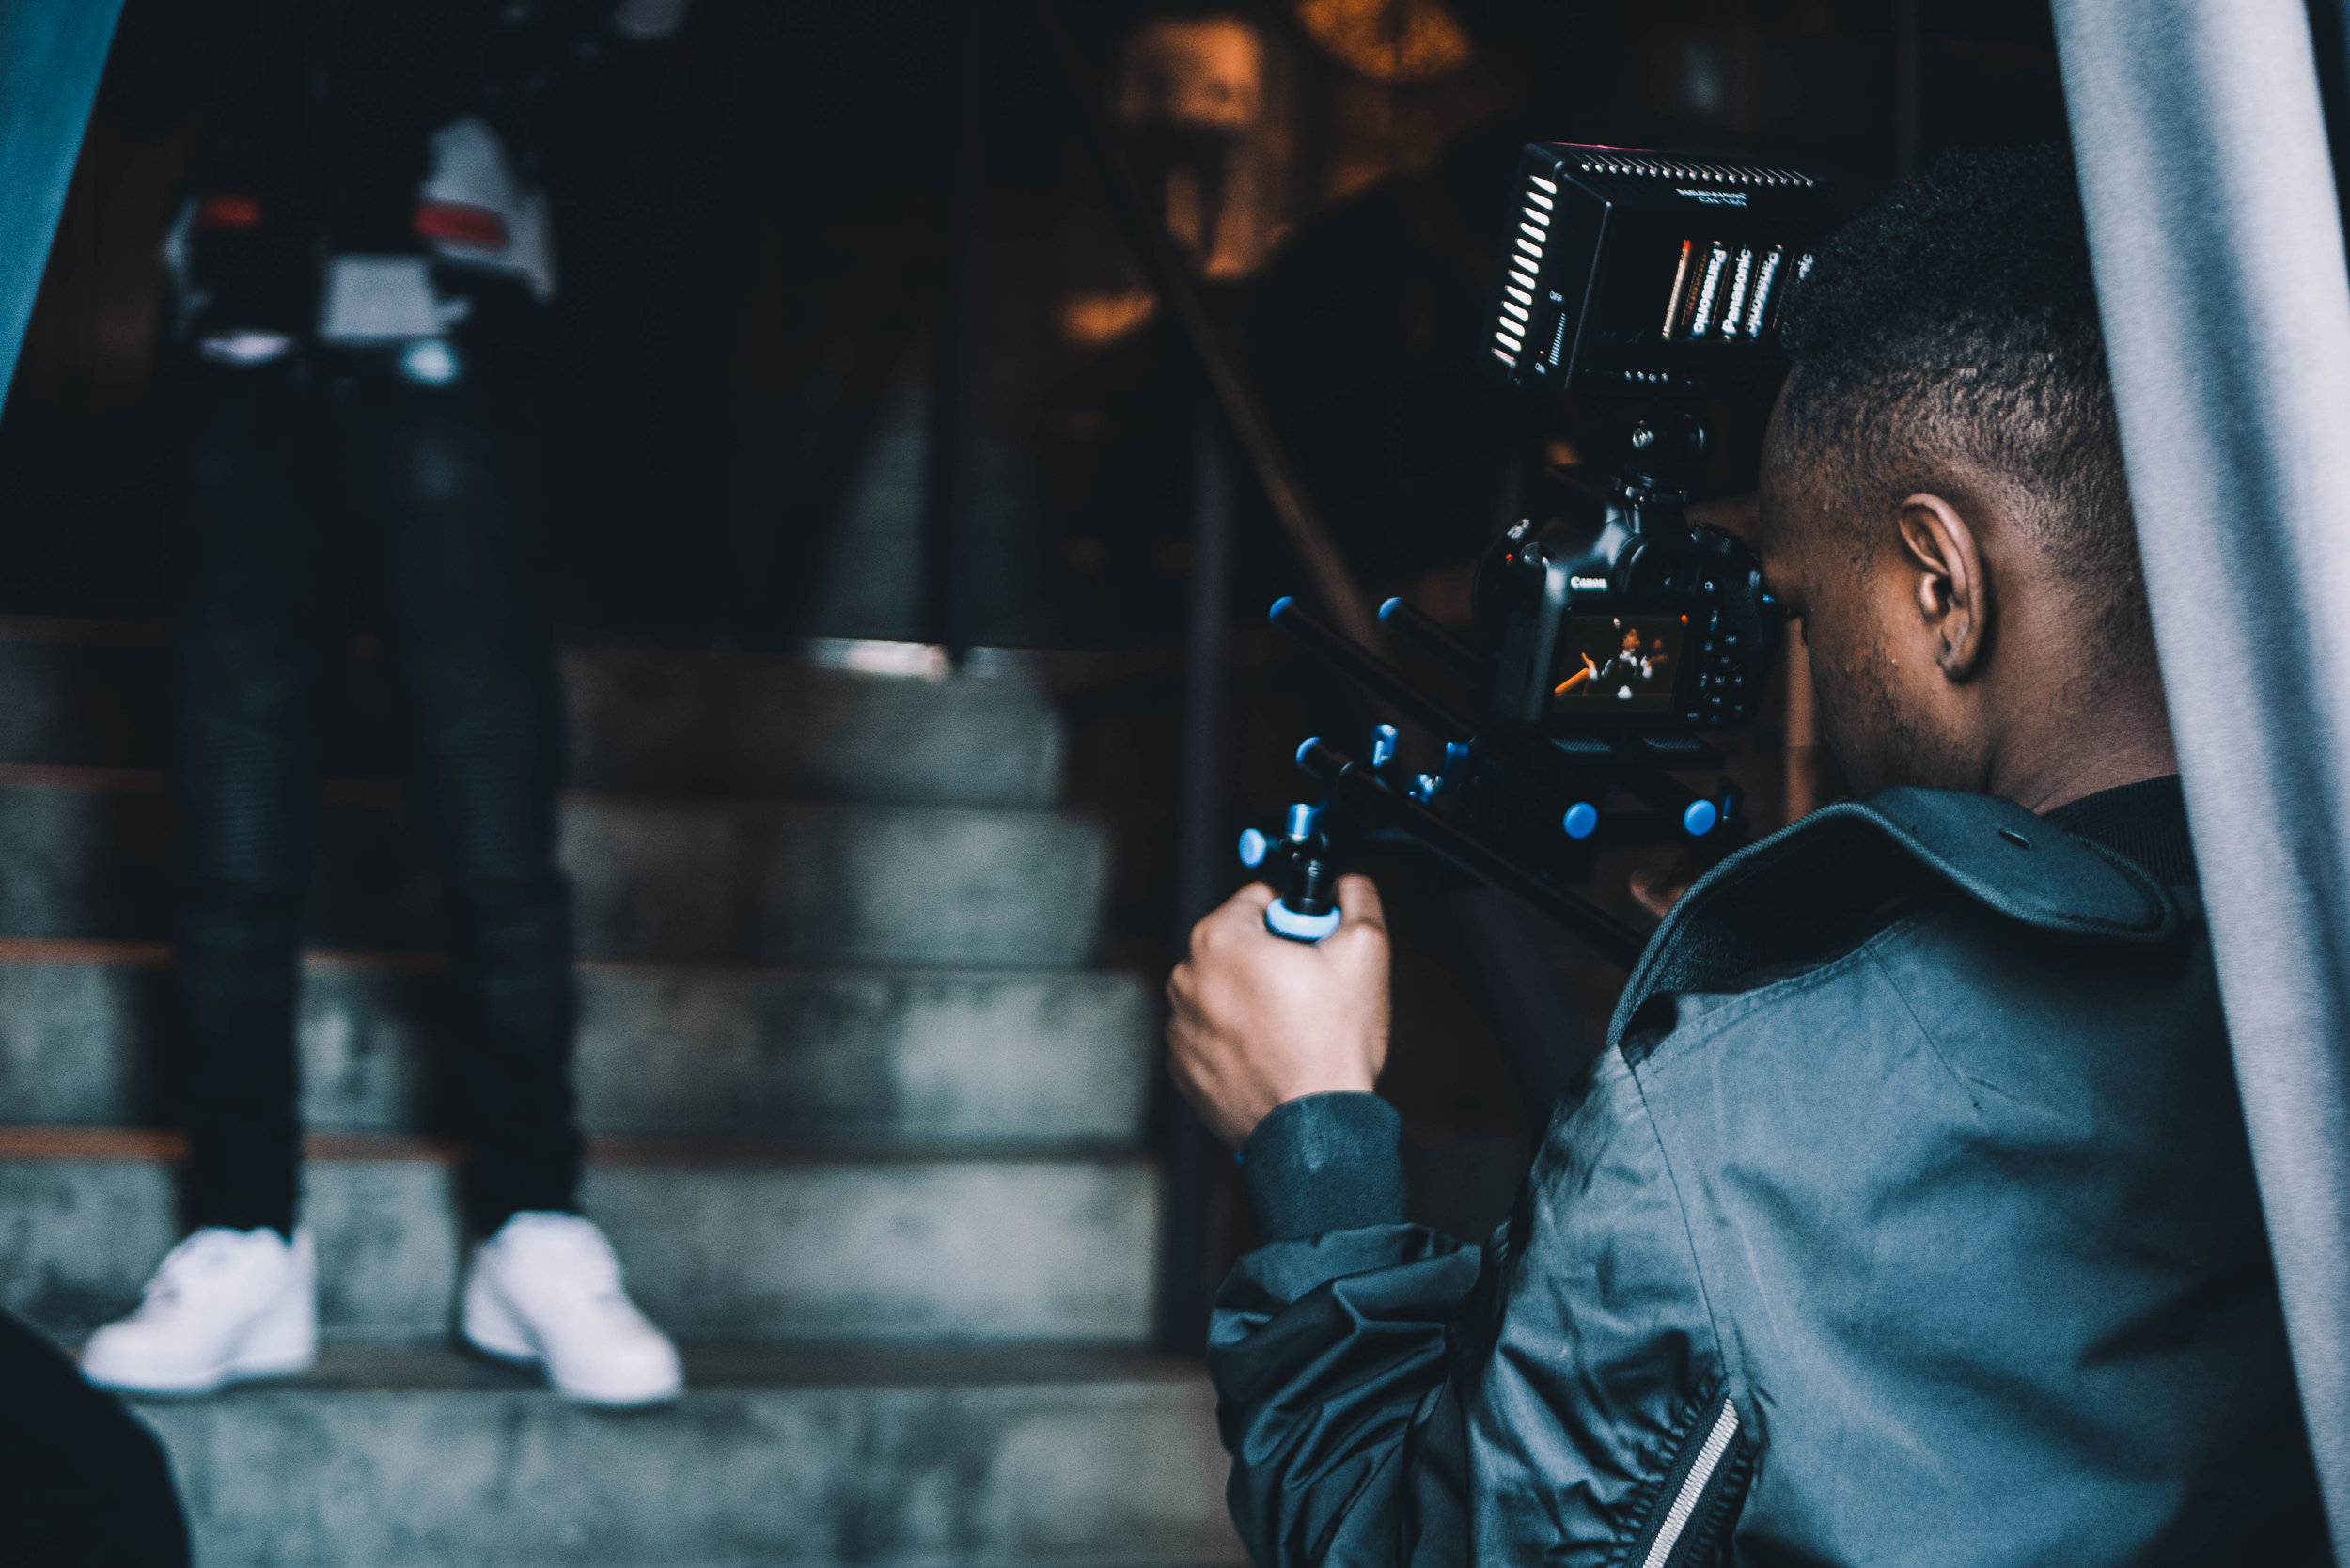 Video Marketing Production Services - Need in-depth video marketing? Our video marketing production services include advanced techniques and production value that will help reach your target audience.